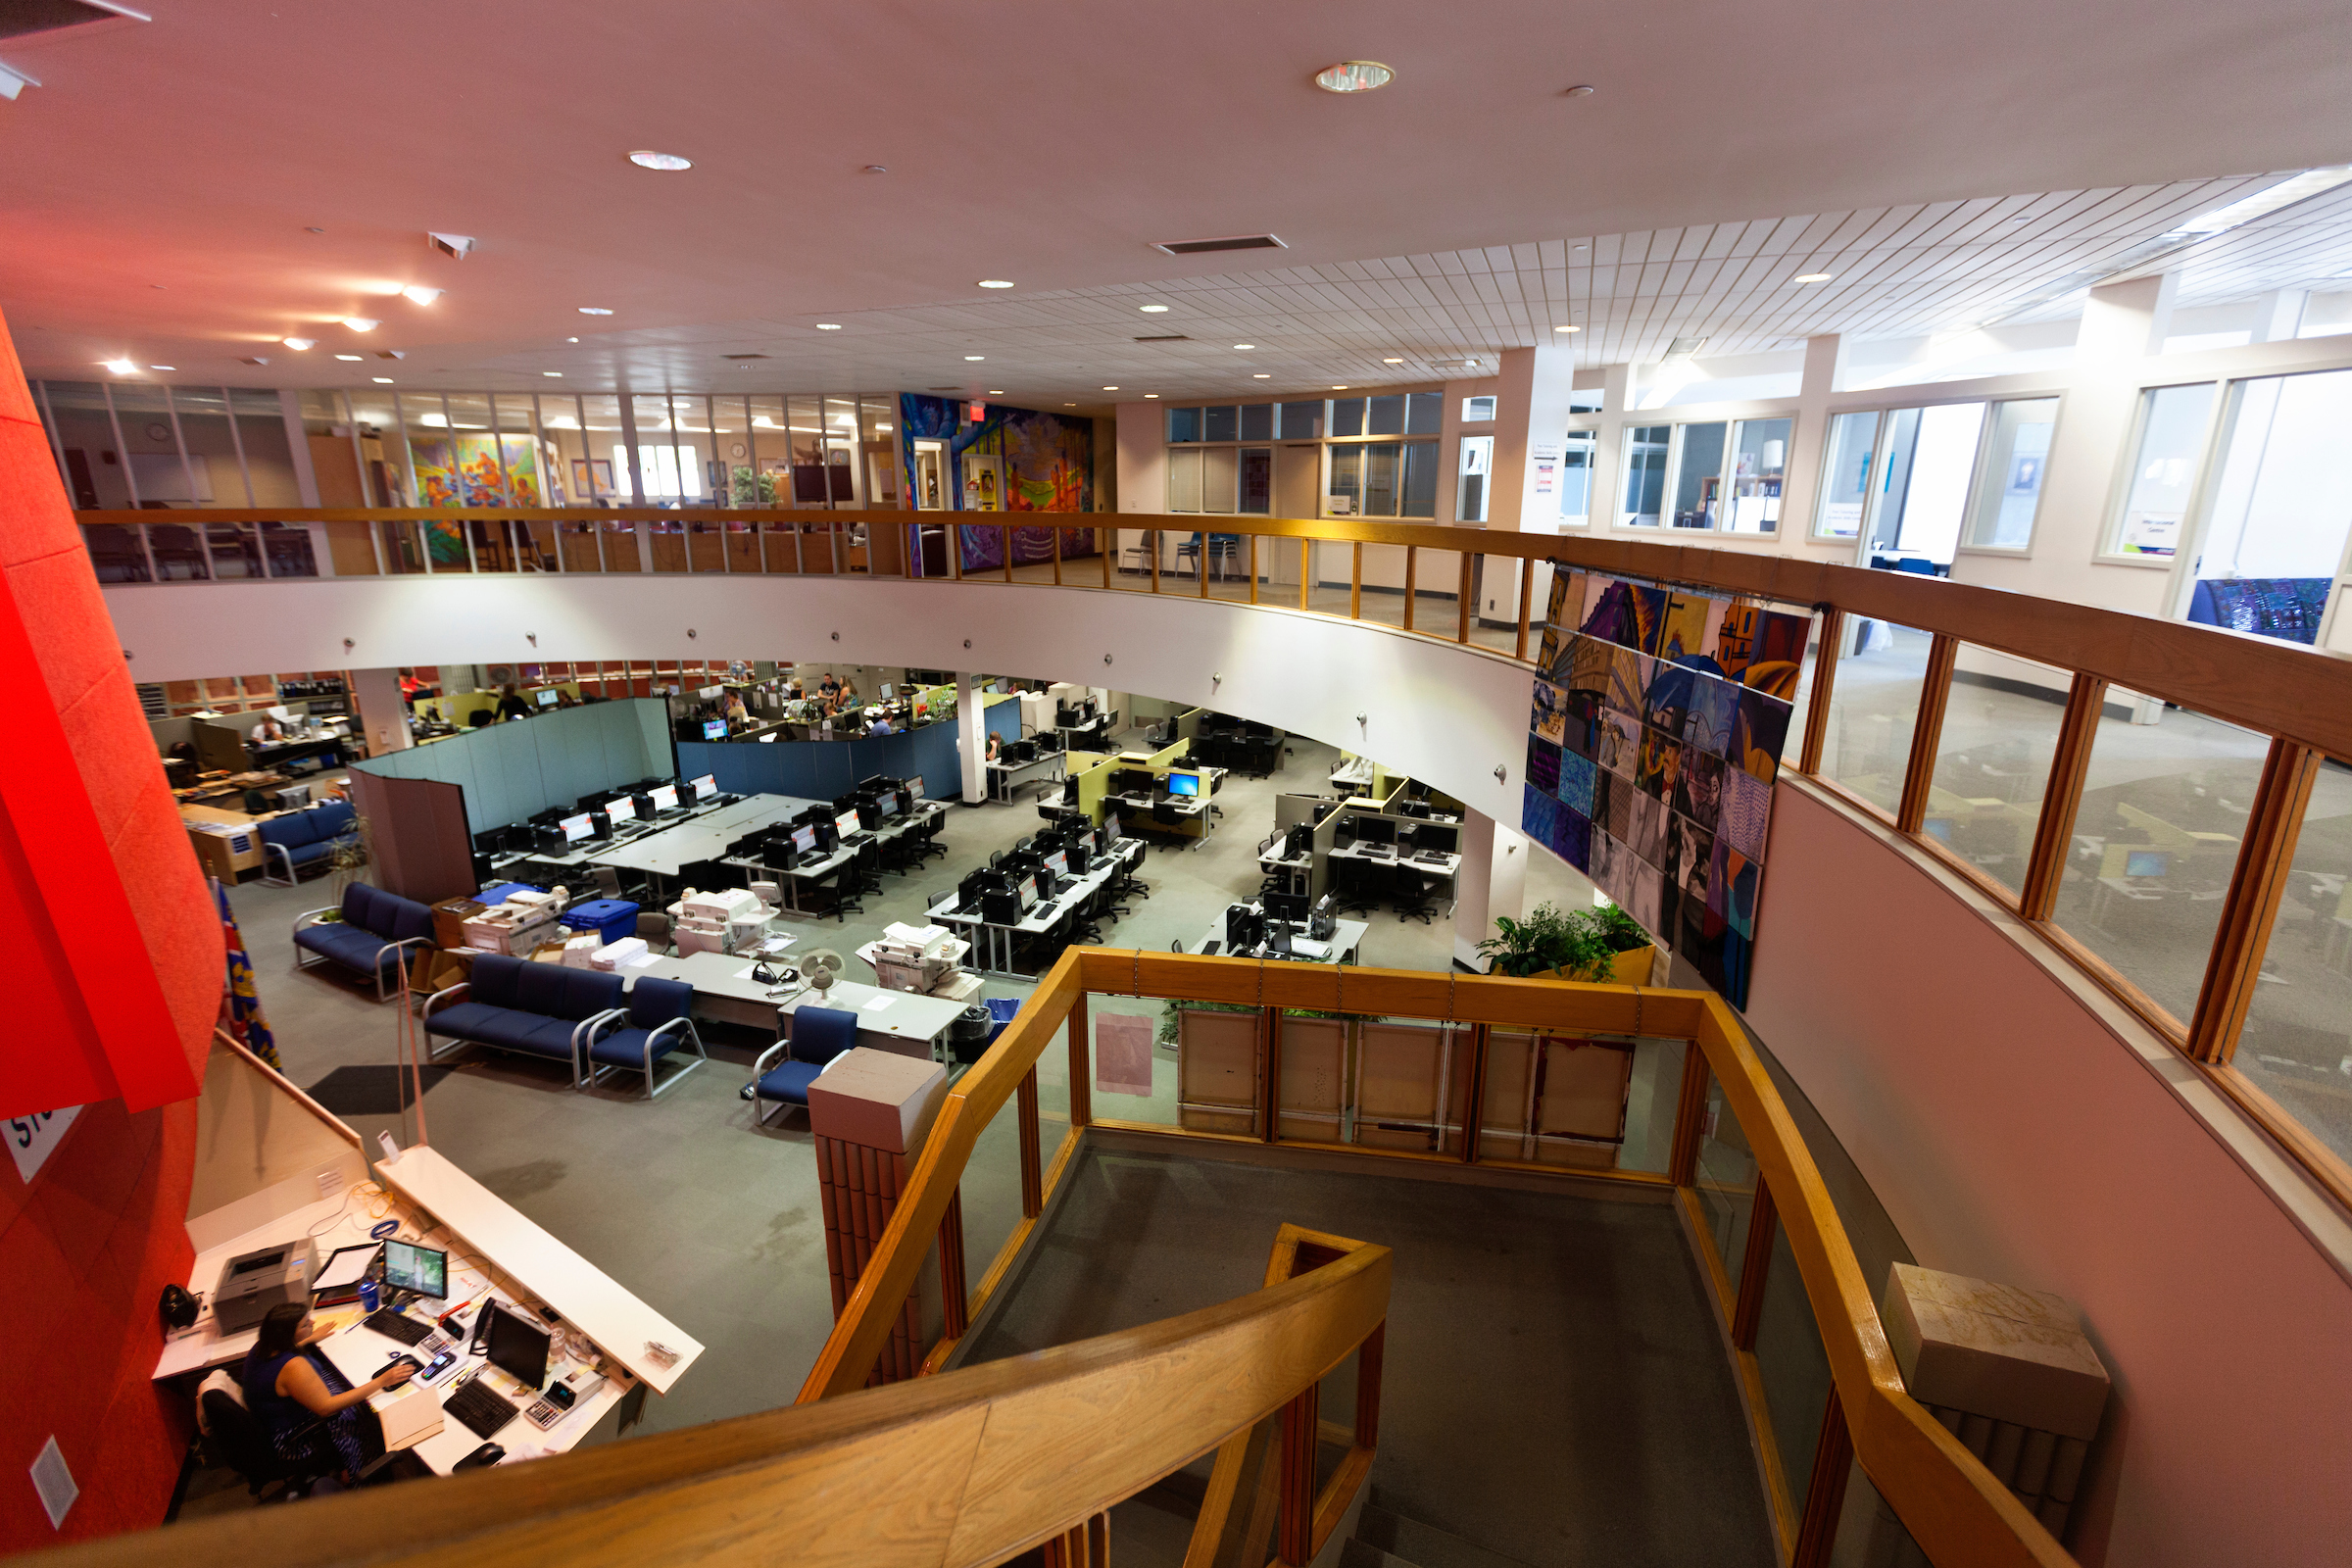 An overhead view of a large computer lab. The offices on the floor above the lab can also be seen.